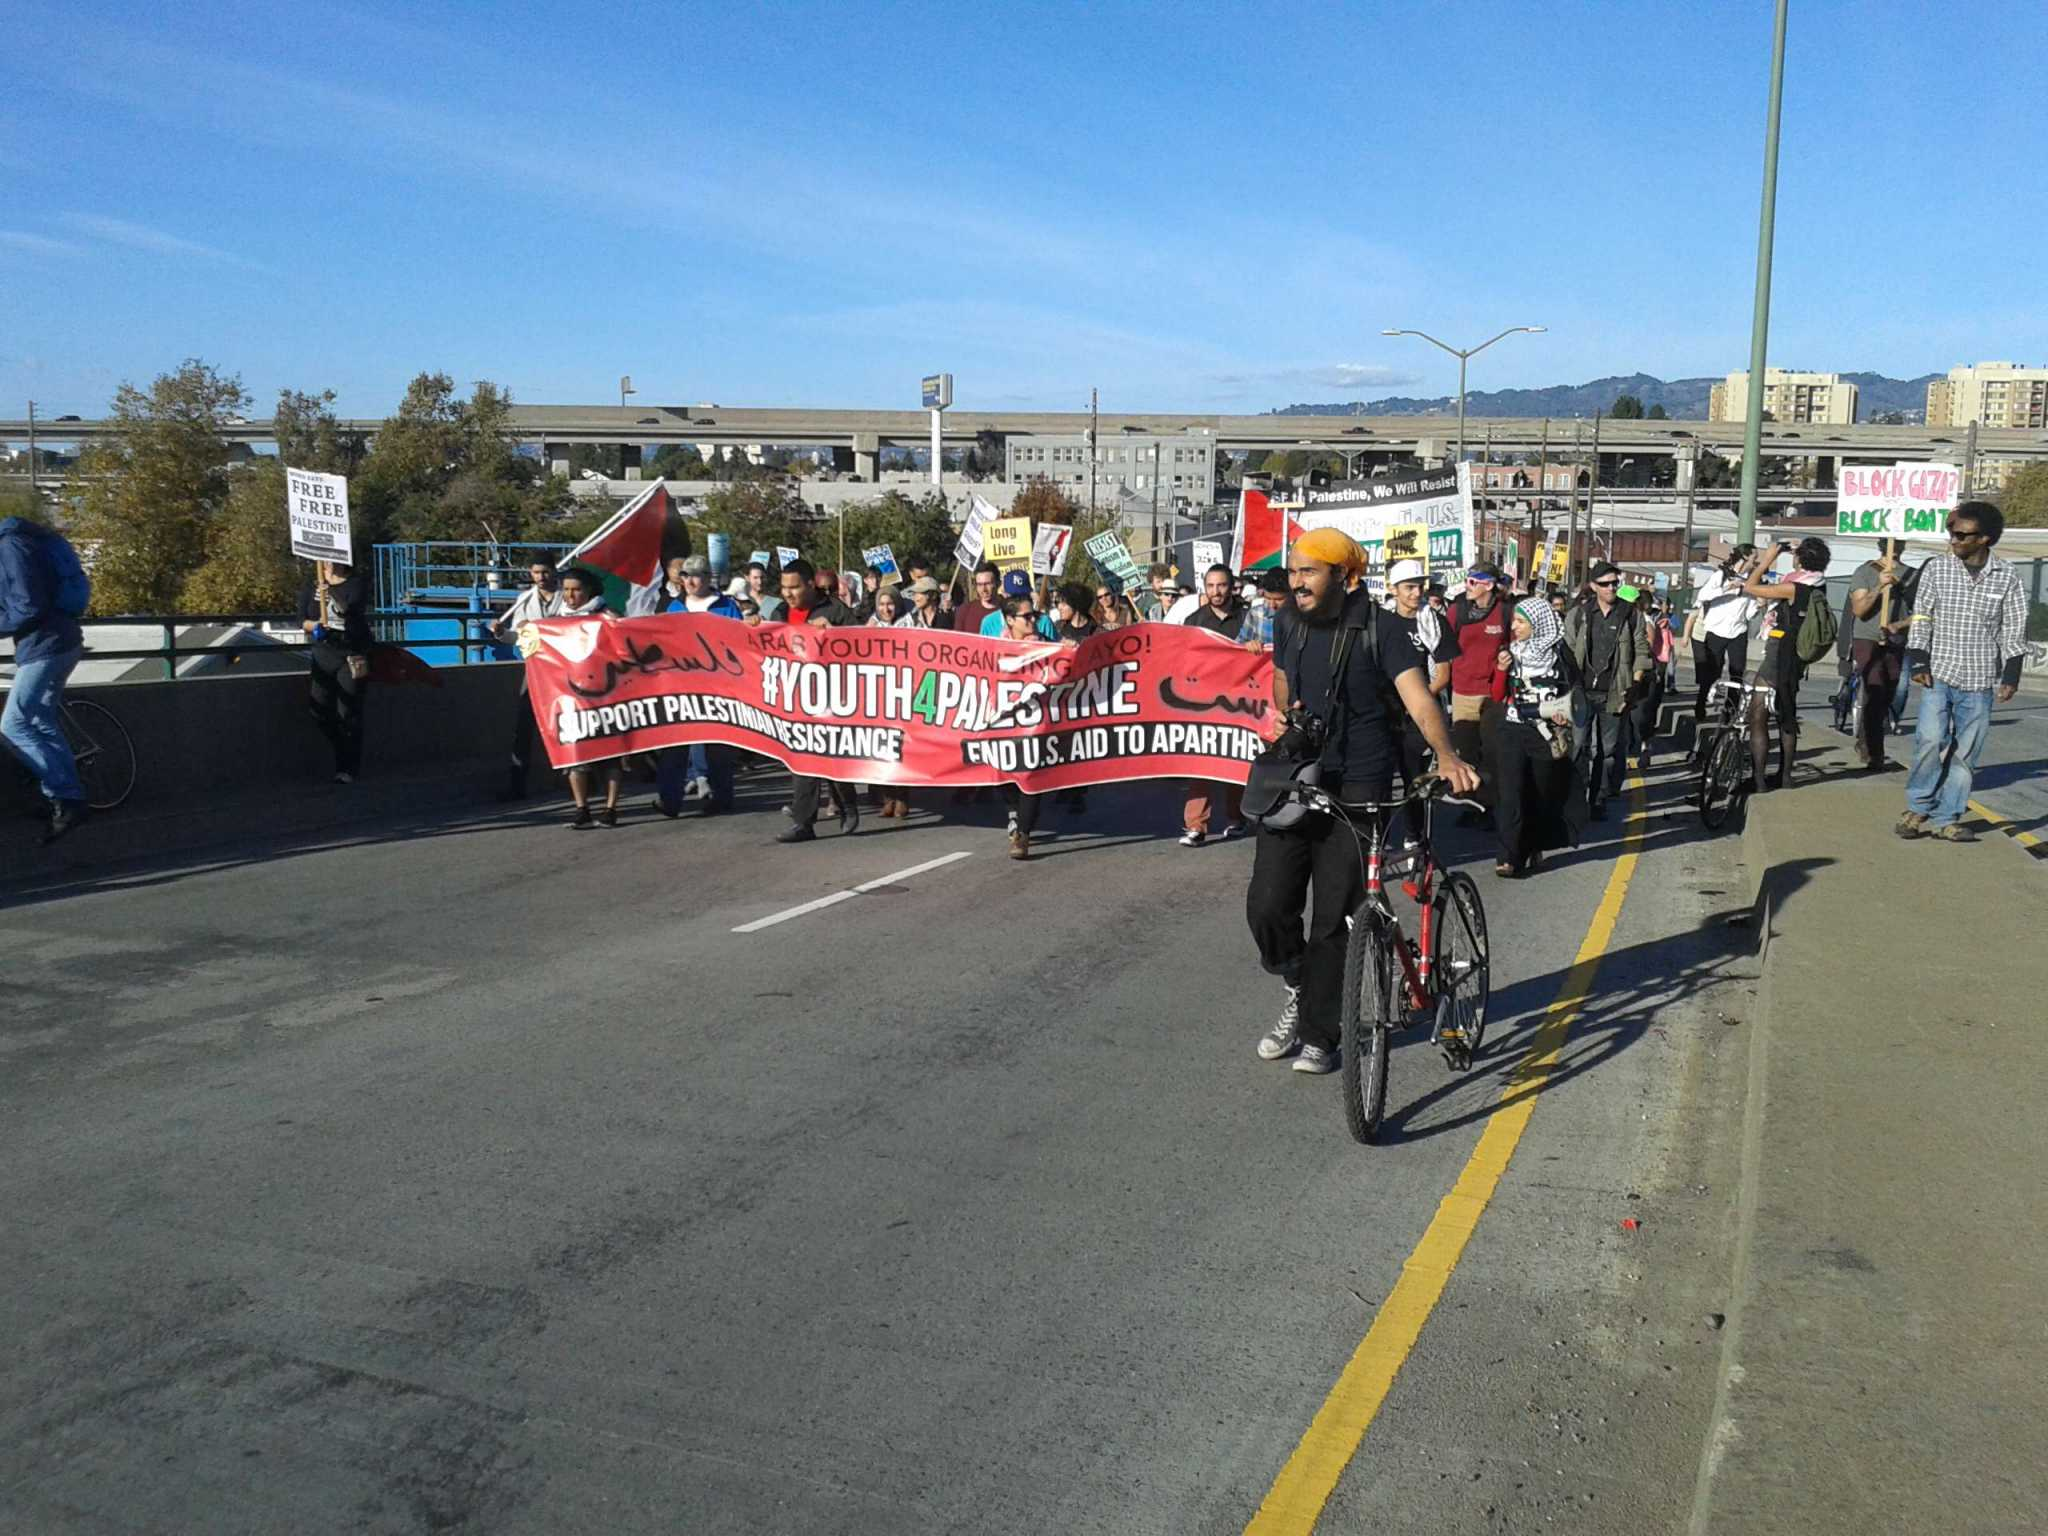 Pro Palestinian protestors continue blockade of Israeli cargo ship in Oakland, have high hopes for near future